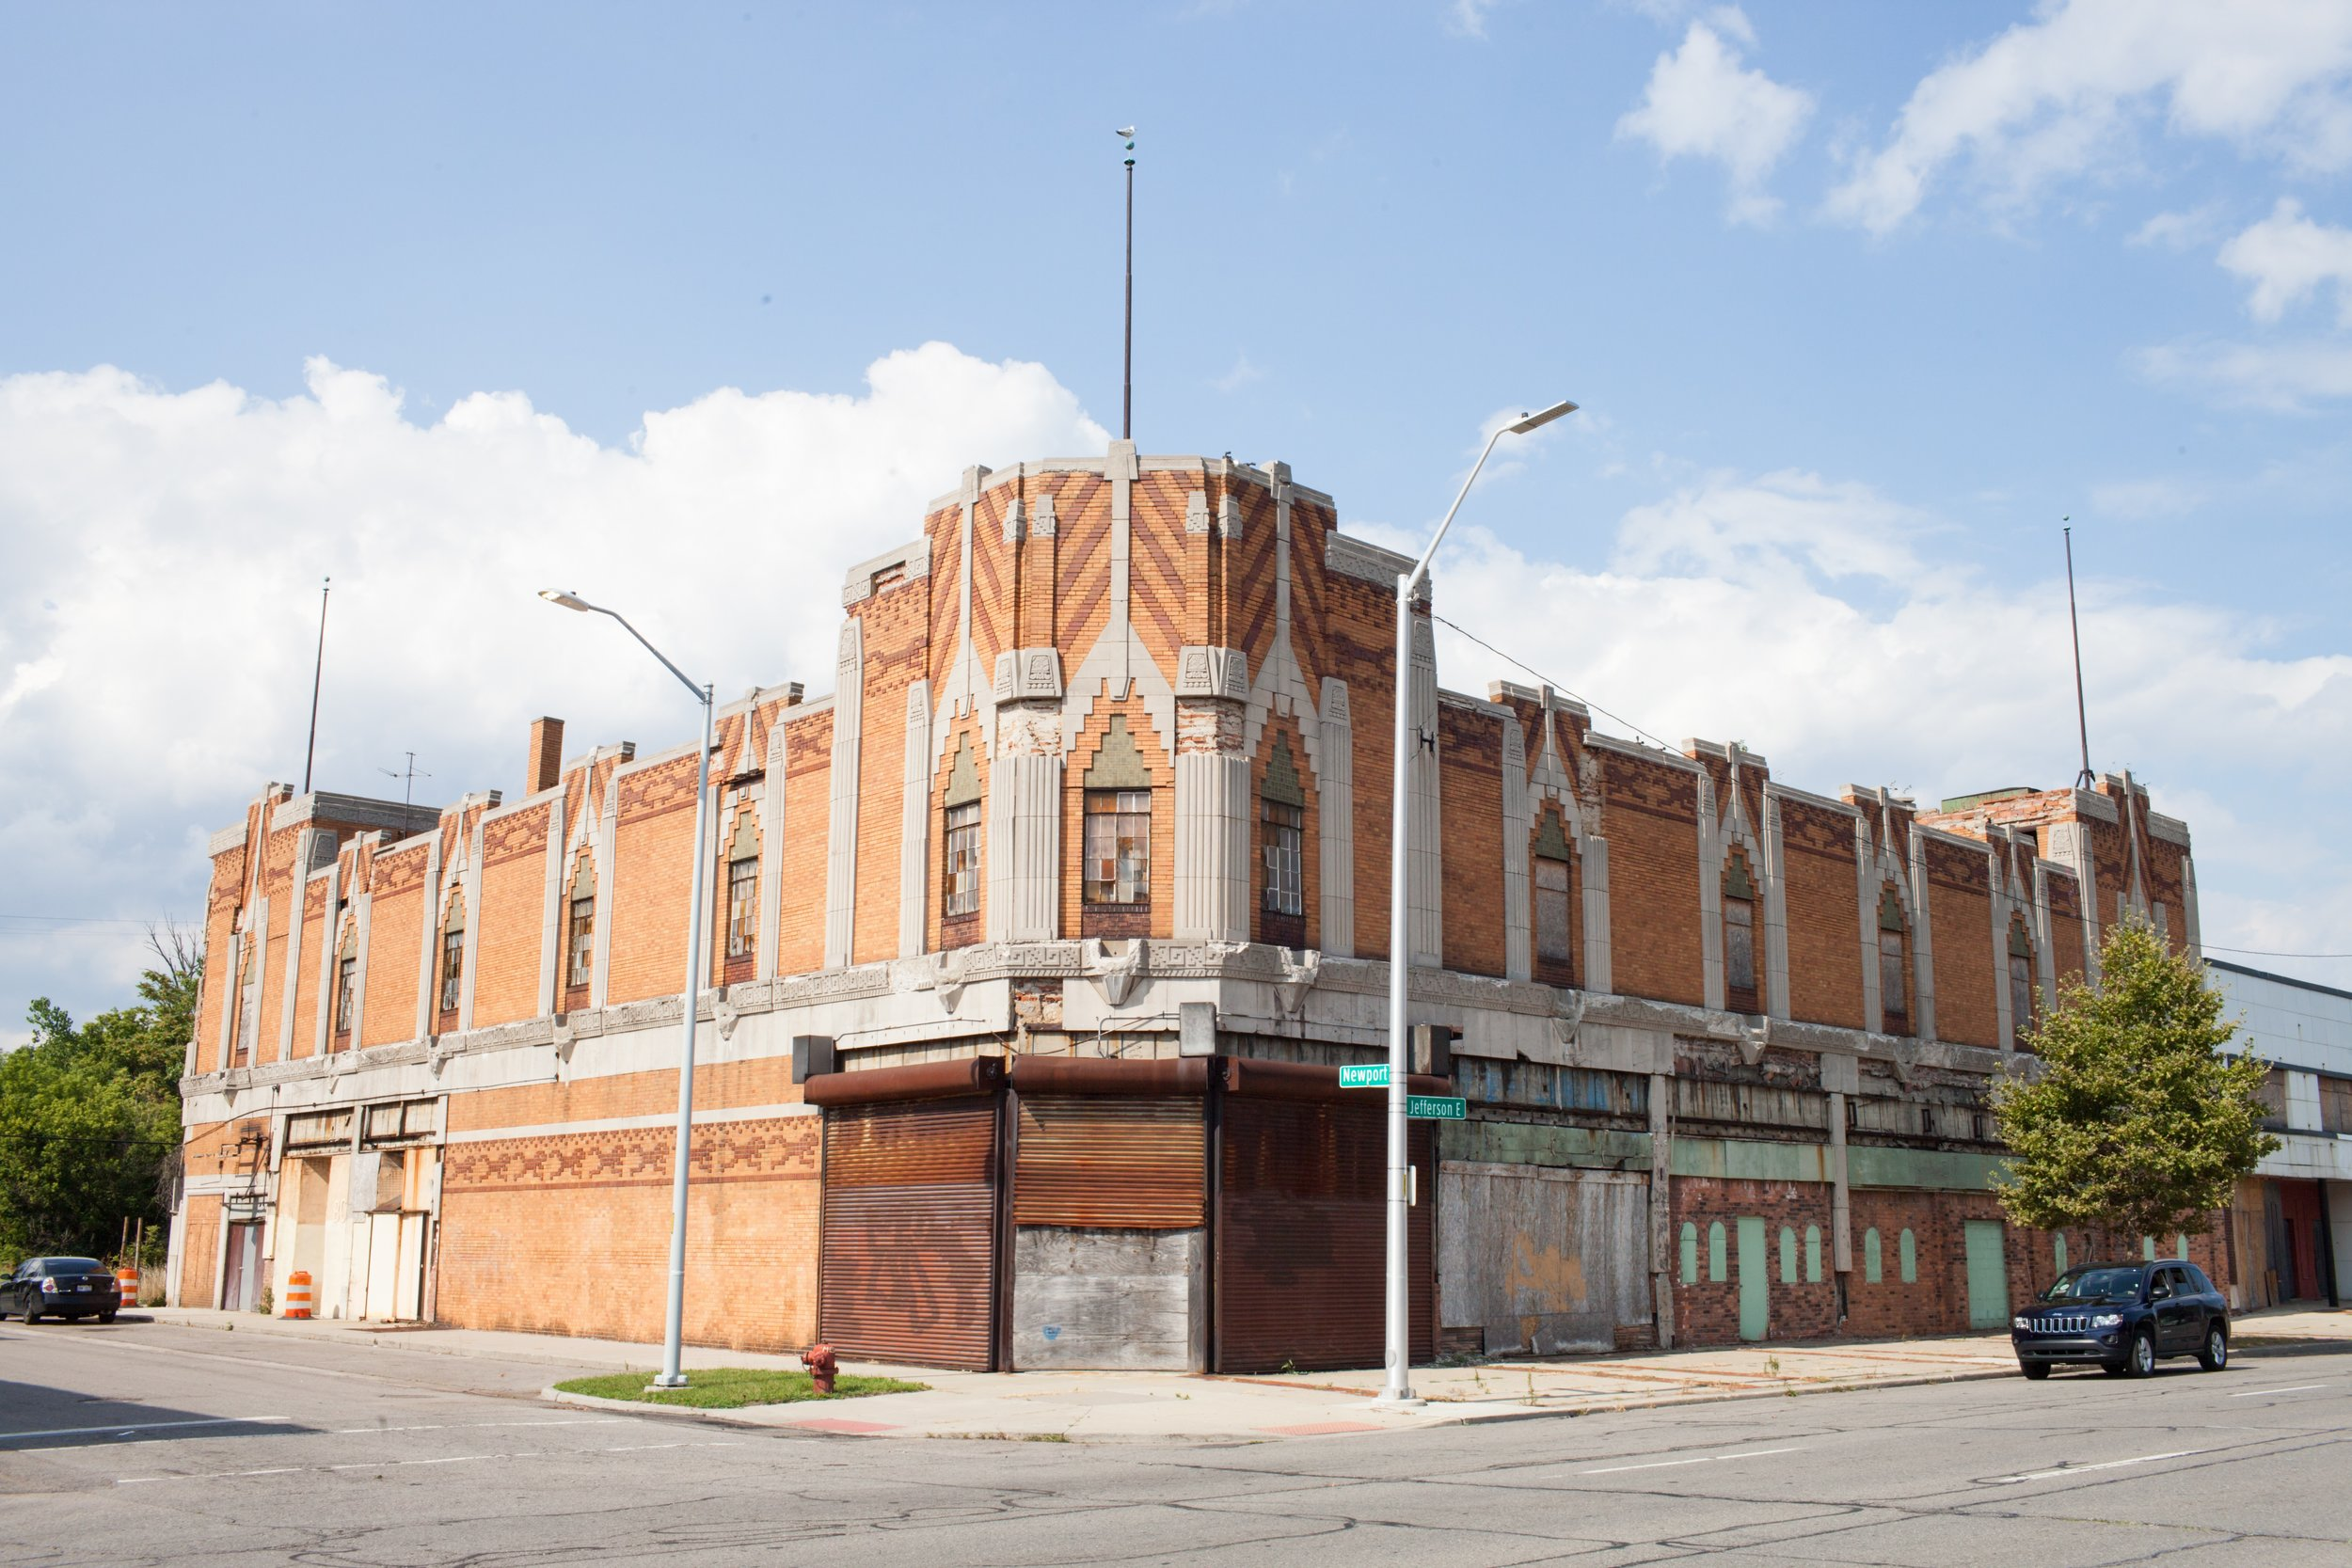 """Detroit residents are ready for the Vanity Ballroom to come back to life and serve the neighborhood as a destination attraction. On the National Register for Historic Places, the Vanity Ballroom is one of the last standing great ballrooms from Detroit's jazz era and a major anchor building in the Jefferson-Chalmers neighborhood.JEI and the City of Detroit are working jointly to secure funds to mothball this property and pioneer a """"tactical preservation"""" strategy to activate the ground floor retail space. In 2017, JEI continued necessary predevelopment work, including the completion of phase I & II environmental assessments, fnancial modeling, and storefront design.   Development Phase: Predevelopment: Phase I and II Enviromental Completed   Total Investment:  $12,000,000   Challenge:  $4.6M Unserviceable Debt Gap"""